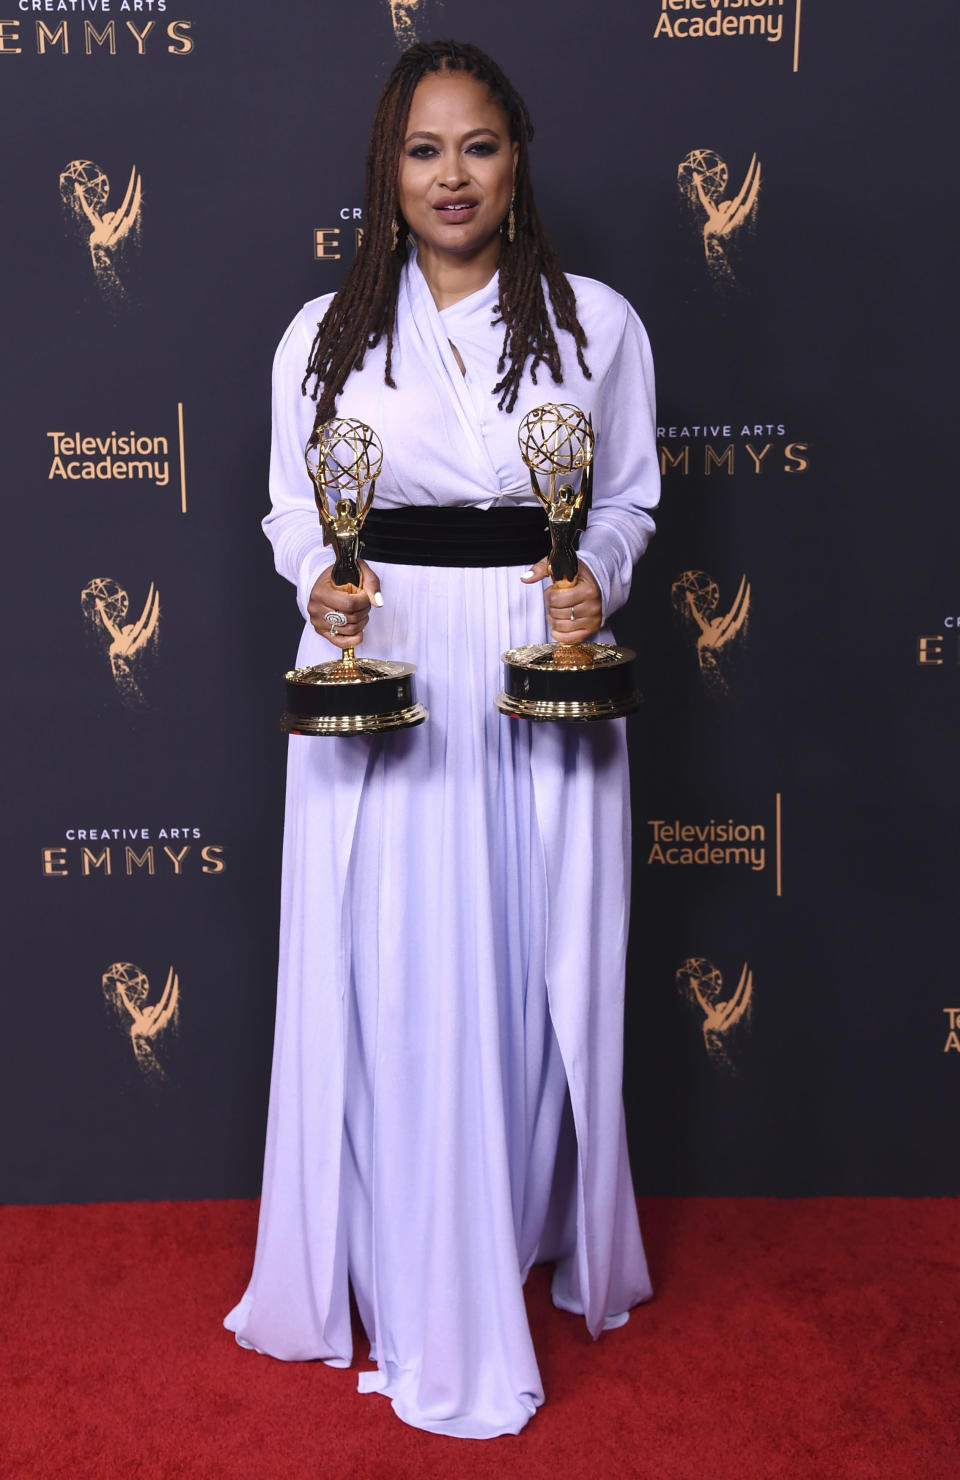 "FILE - Ava DuVernay, poses in the press room with the awards for outstanding documentary or nonfiction special, and for outstanding writing for nonfiction program for ""13th"" during night one of the Creative Arts Emmy Awards in Los Angeles on Sept. 9, 2017. DuVernay, who created the TV series ""Queen Sugar"" hired Cierra Glaude to work on the Oscar-nominated 2014 film ""Selma"" as well as her CBS pilot ""For Justice."" (Photo by Richard Shotwell/Invision/AP, File)"